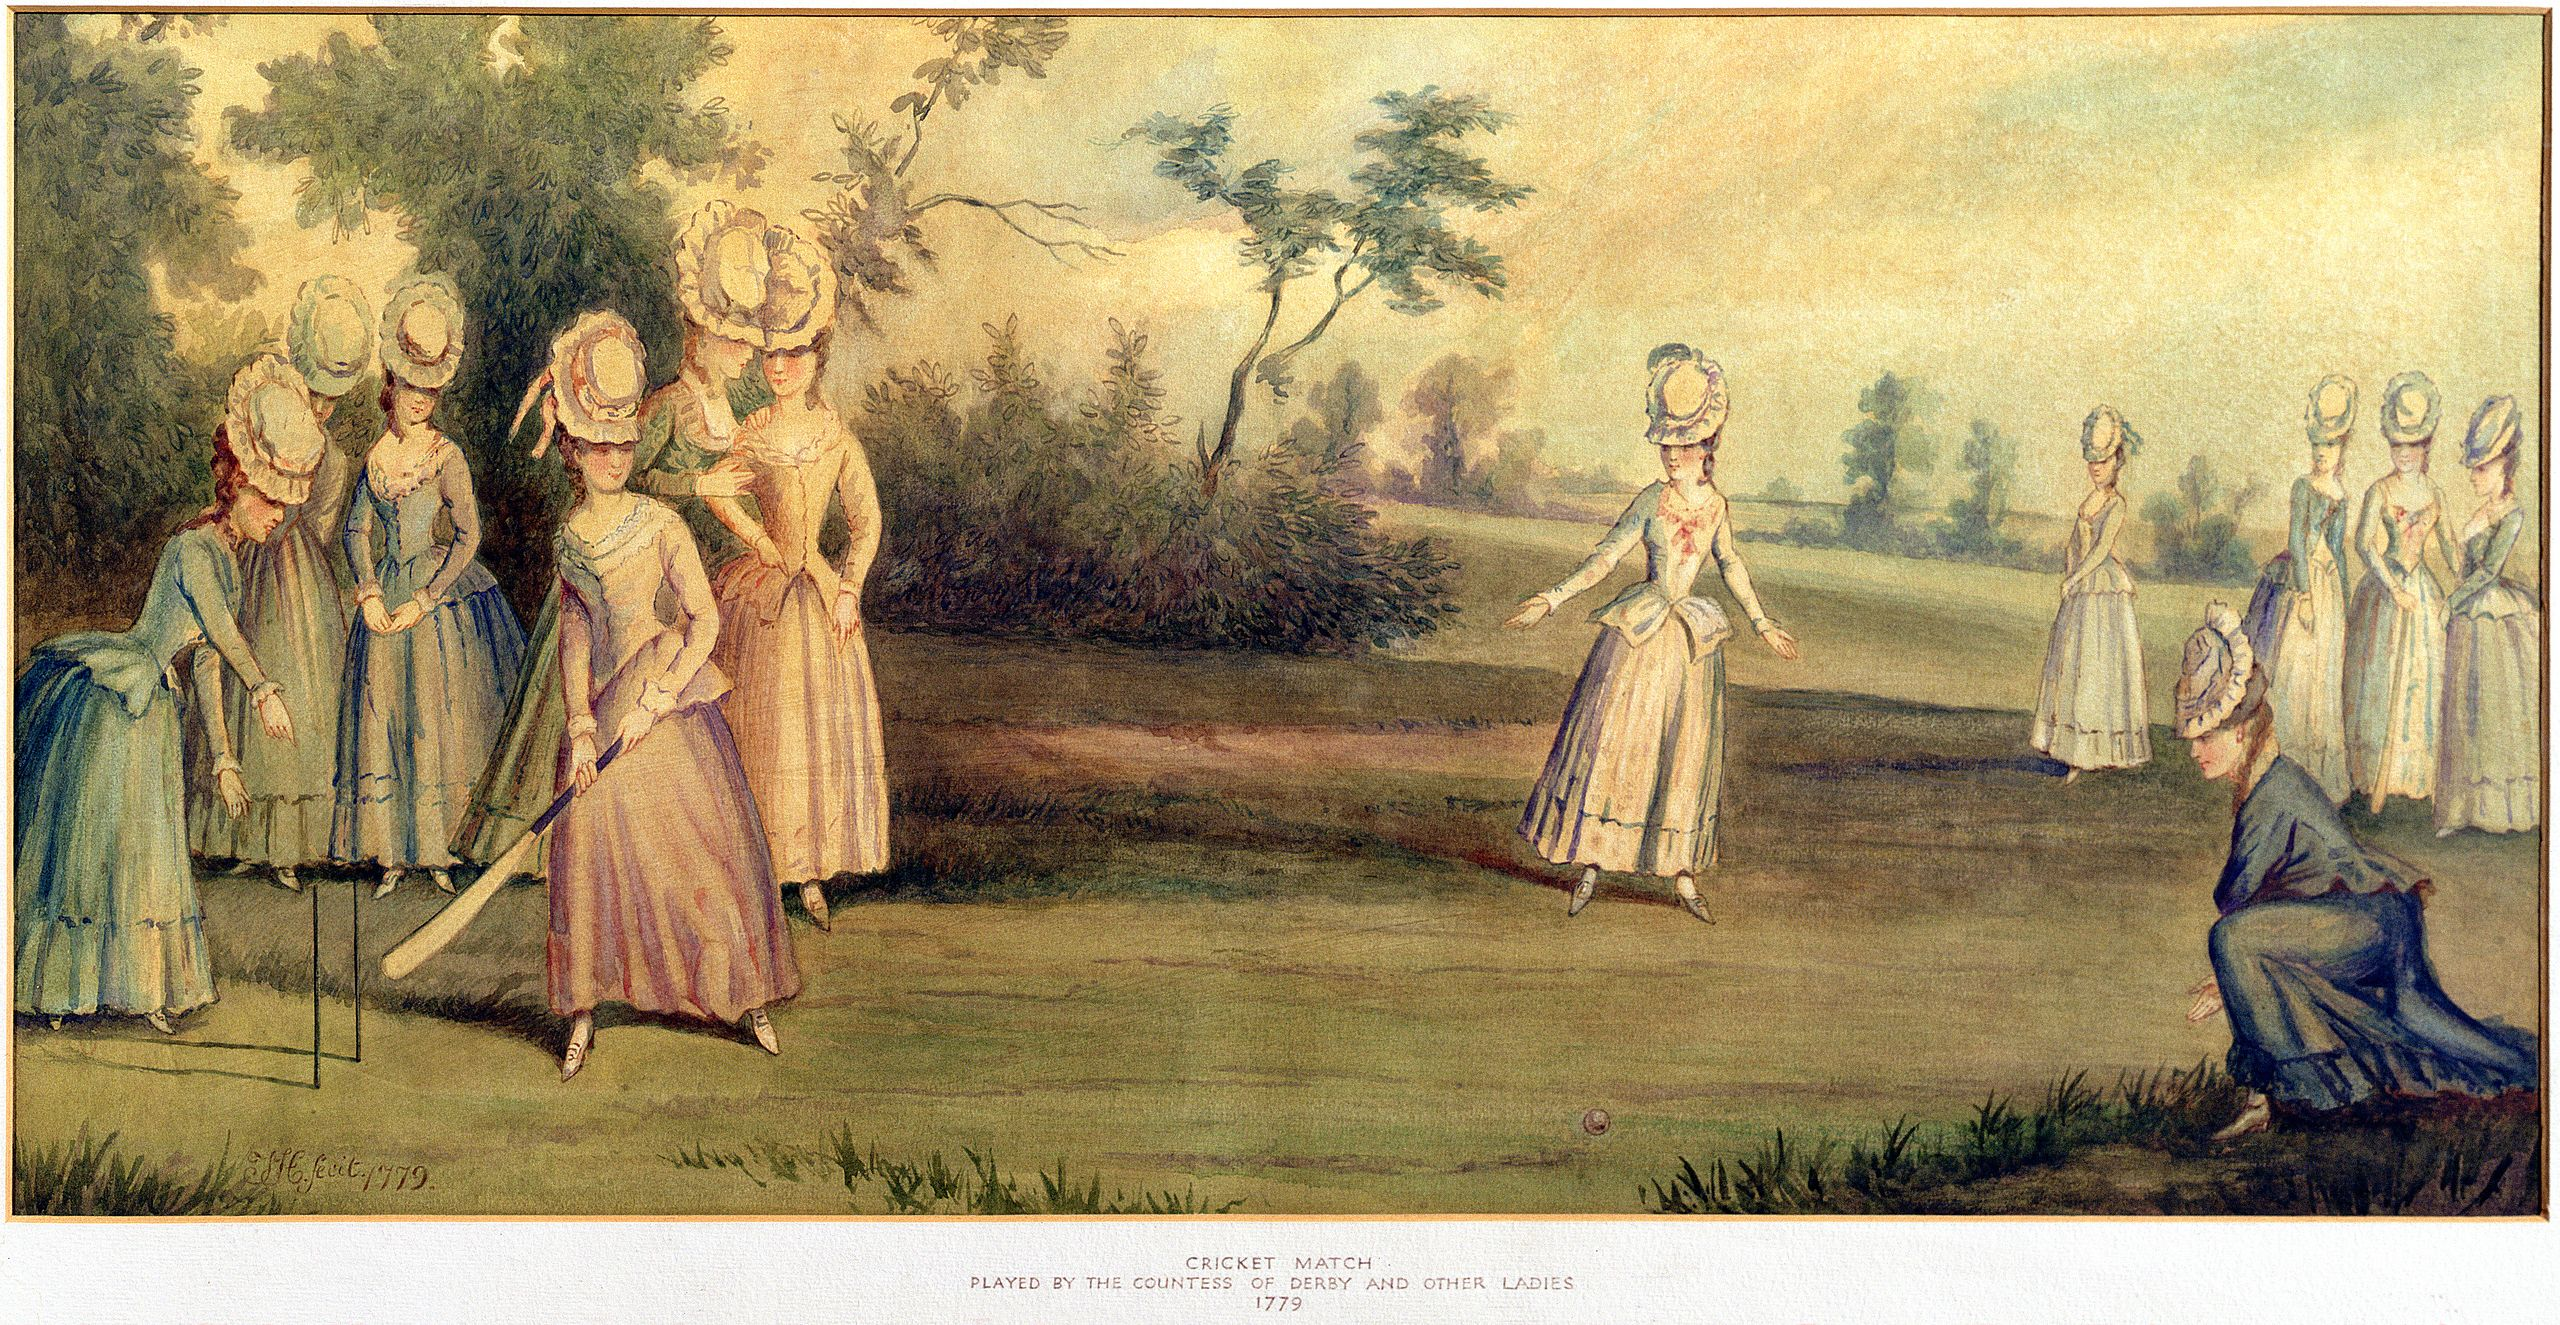 A 1779 cricket match played by the Countess of Derby and other ladies. (Wikipedia)